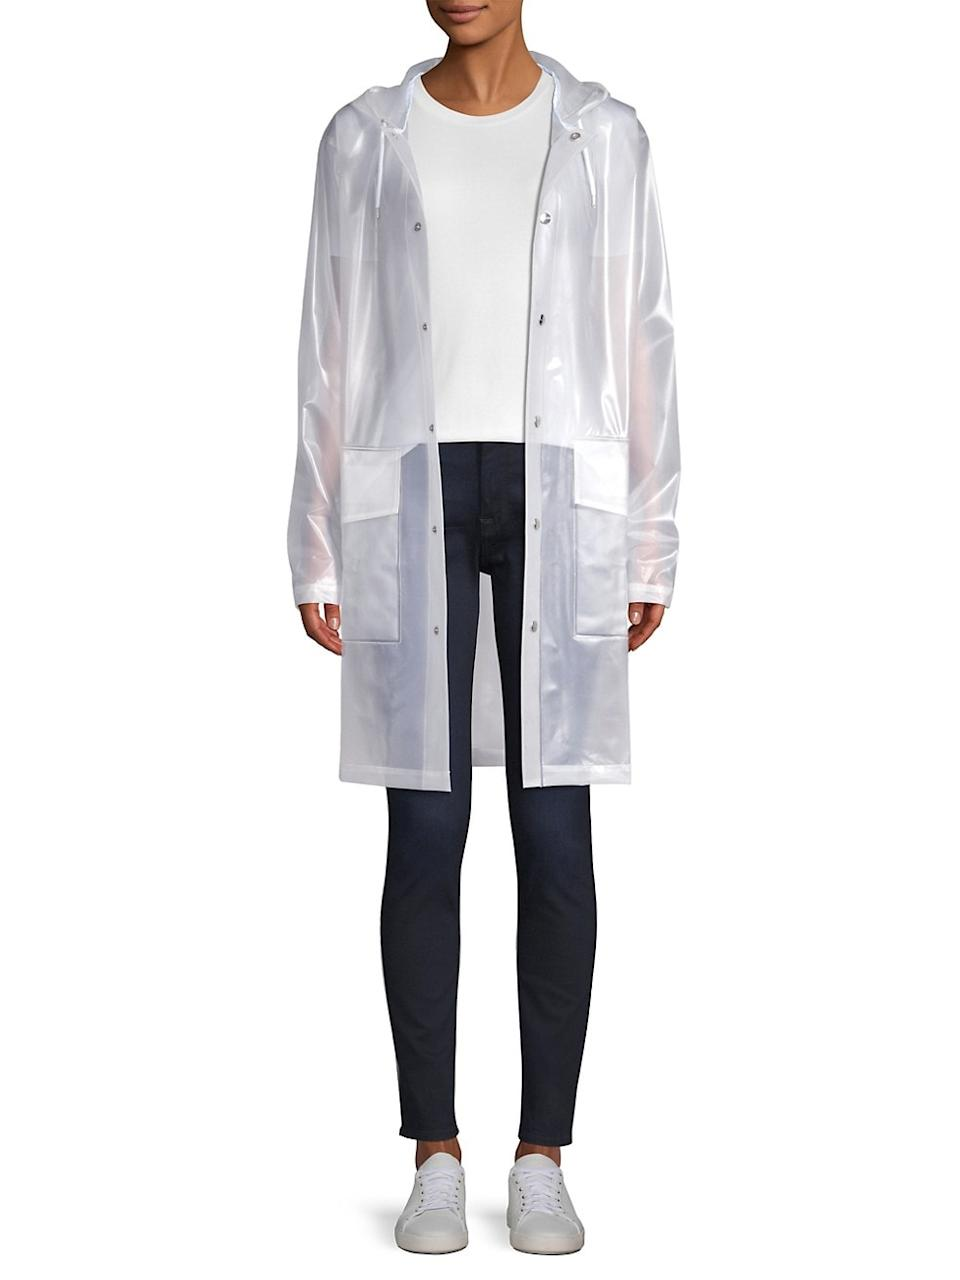 LTD Mirage Capsule Hooded Translucent Coat